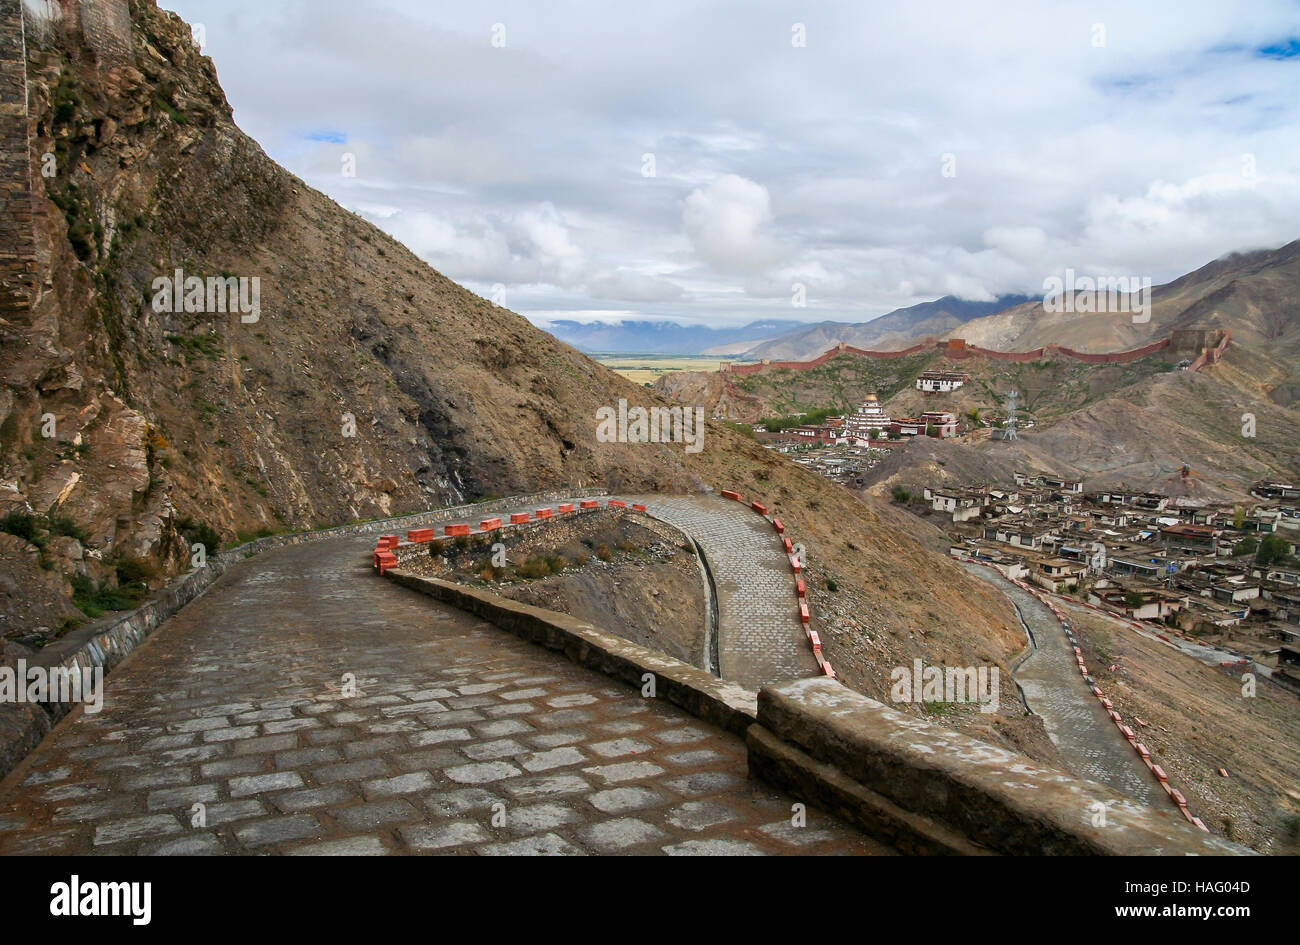 Winding road to the monastery in Gyantse town, in the Tibet Autonomous Region of China. - Stock Image